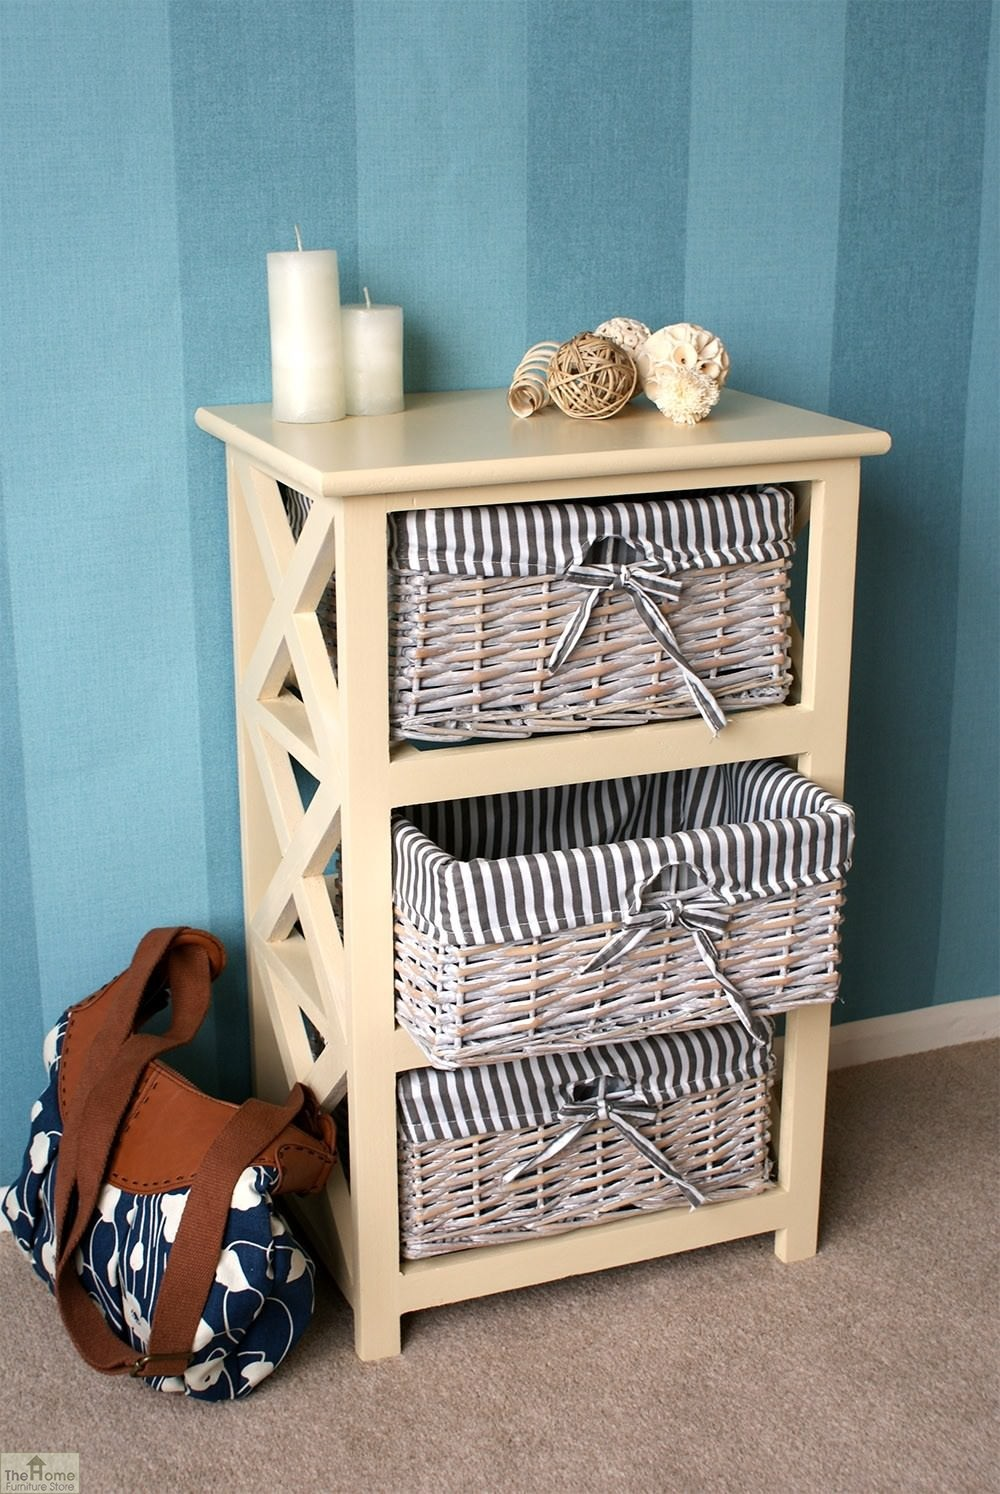 selsey 3 drawer wicker storage unit the home furniture store. Black Bedroom Furniture Sets. Home Design Ideas